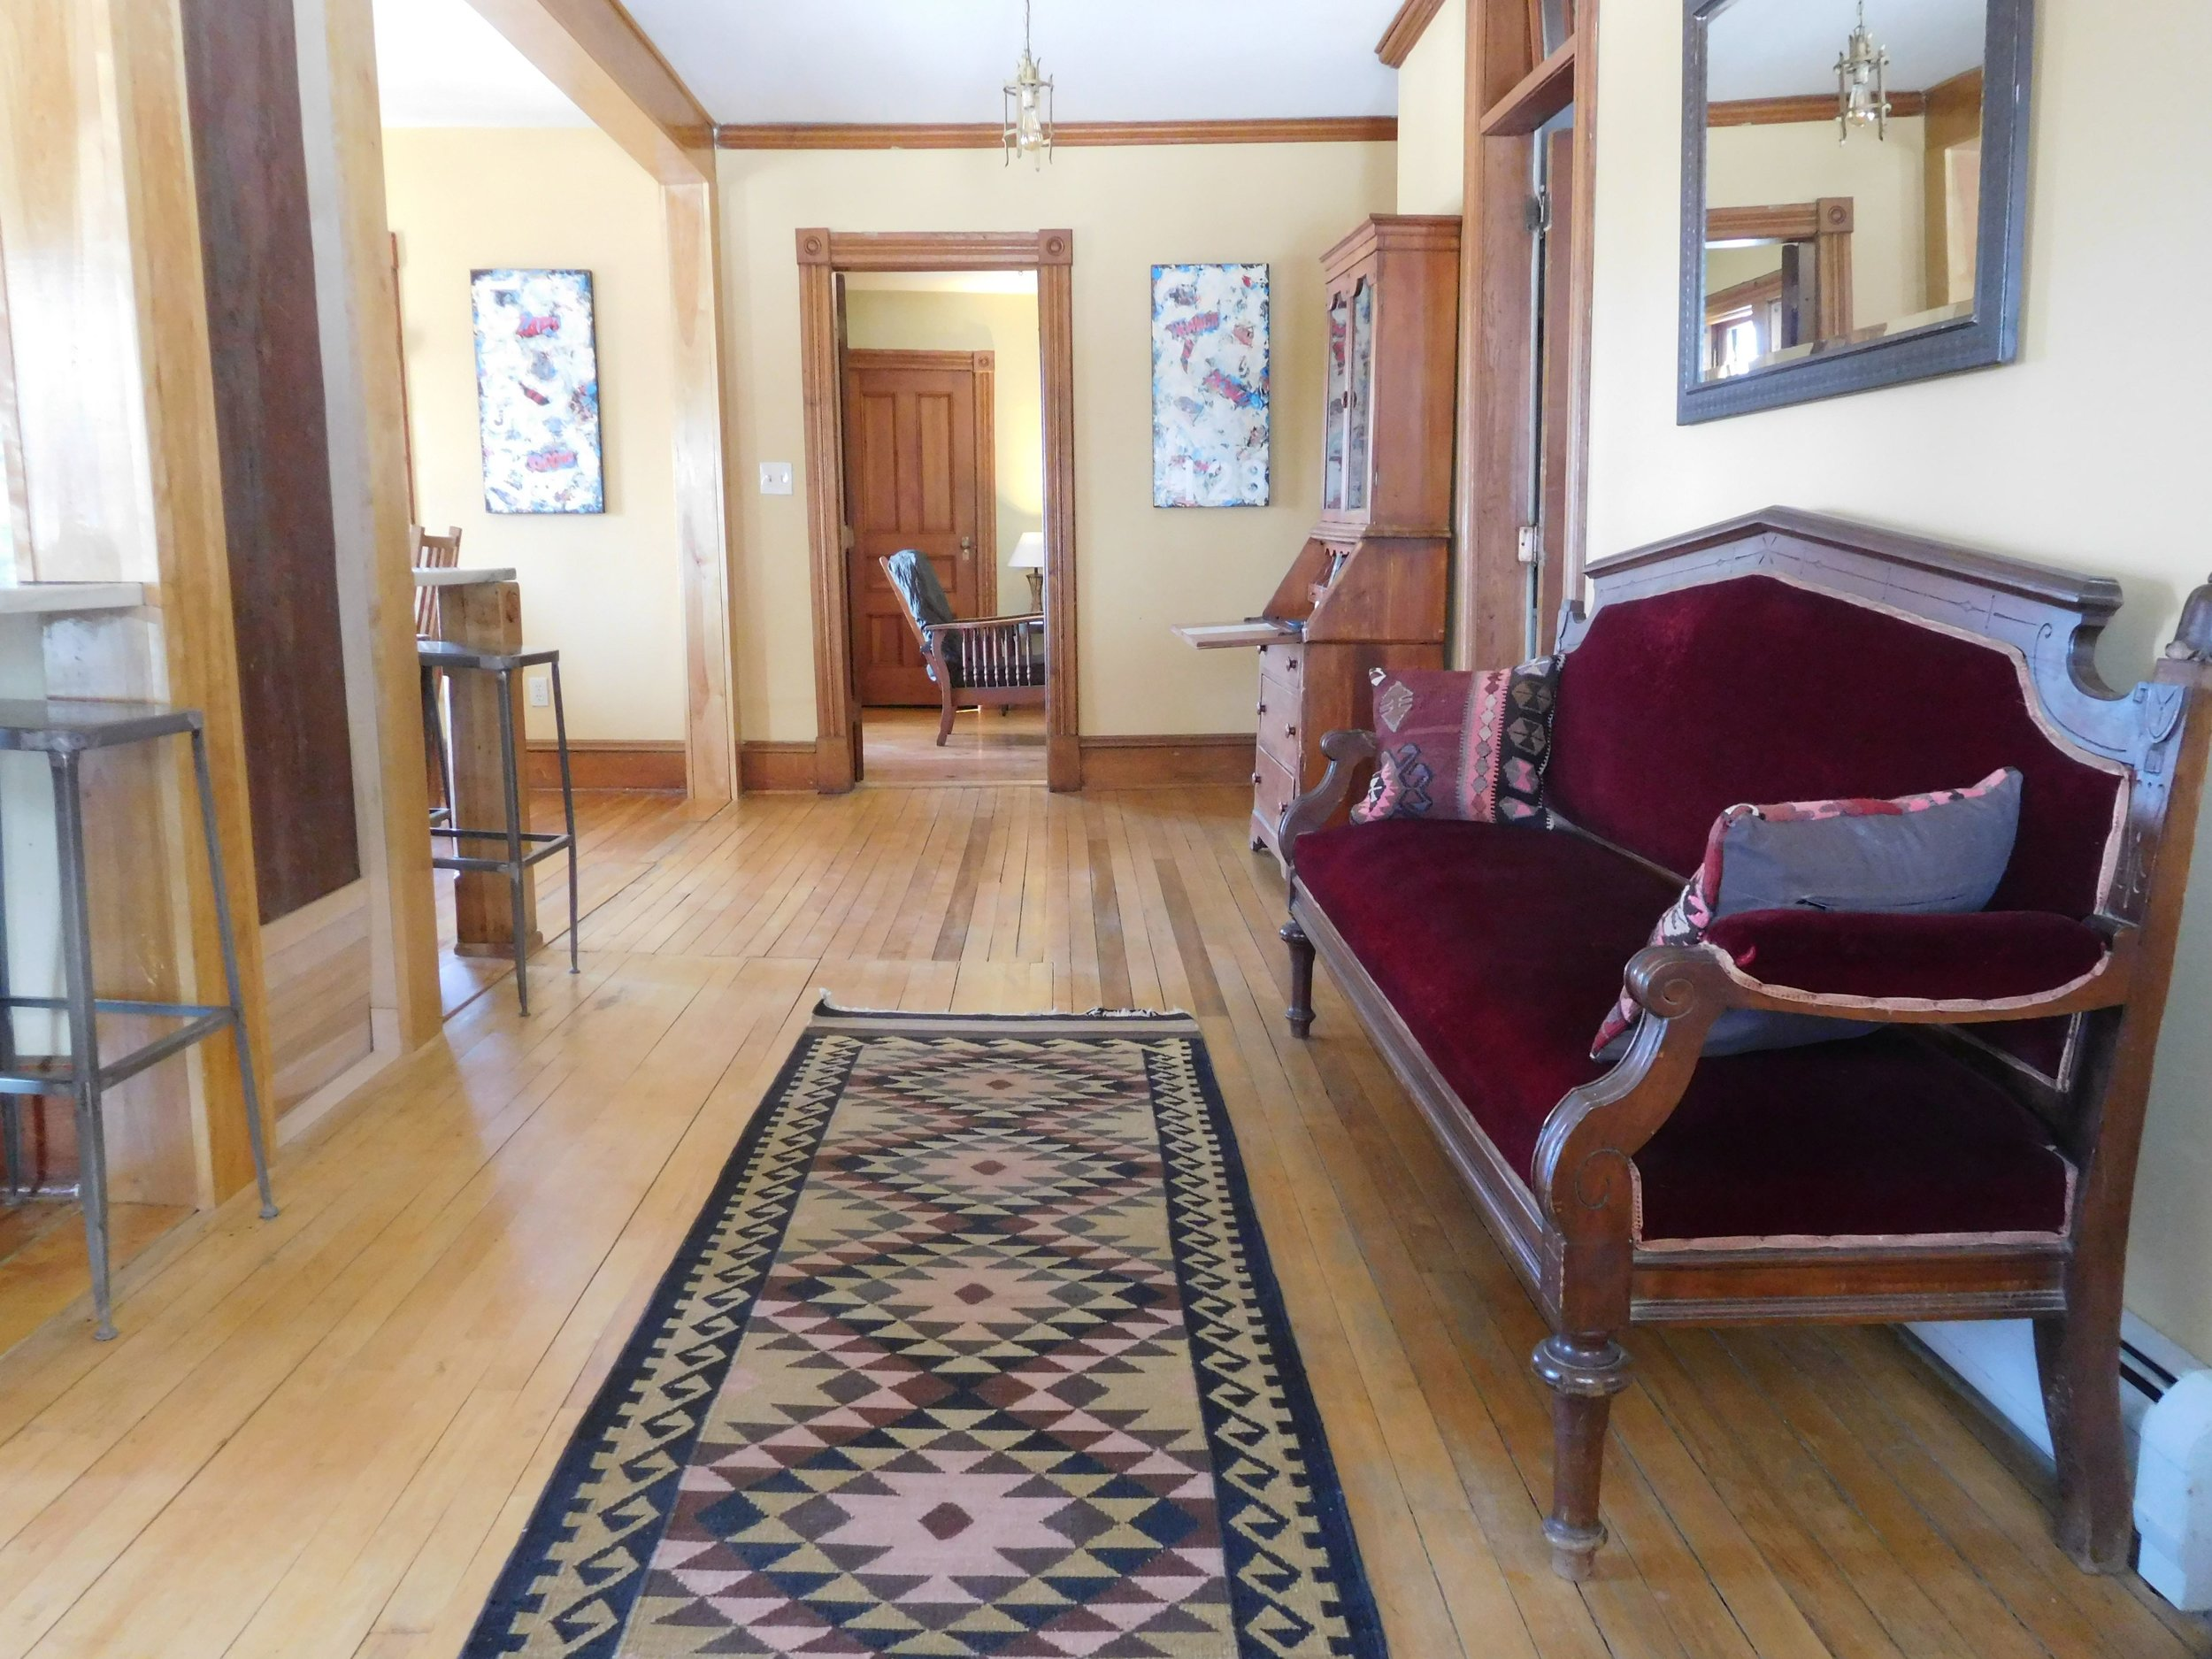 Left Wing entry - Hardwood floors, locally sourced art, quality furniture.